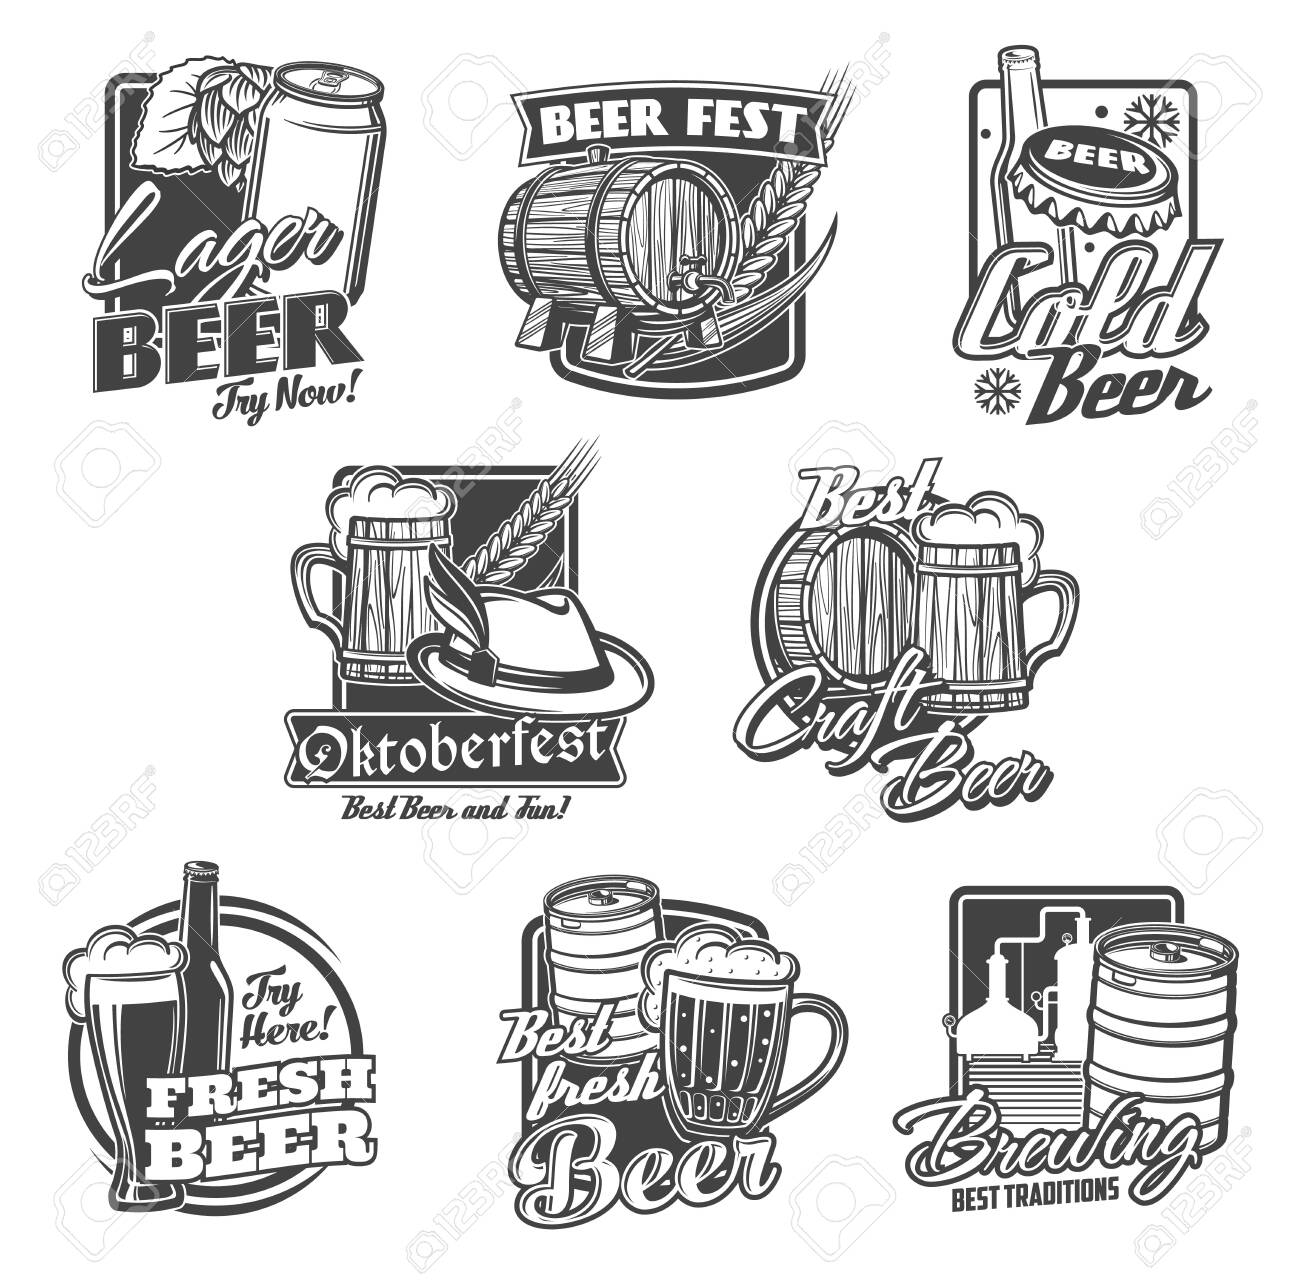 Beer alcohol drink vector icons with beer bottles, glasses and mugs. Pub, bar or brewery pints of ale and lager beverages, barrel, hops and barley, tap, can, brewing tanks and Oktoberfest tankard - 149339737